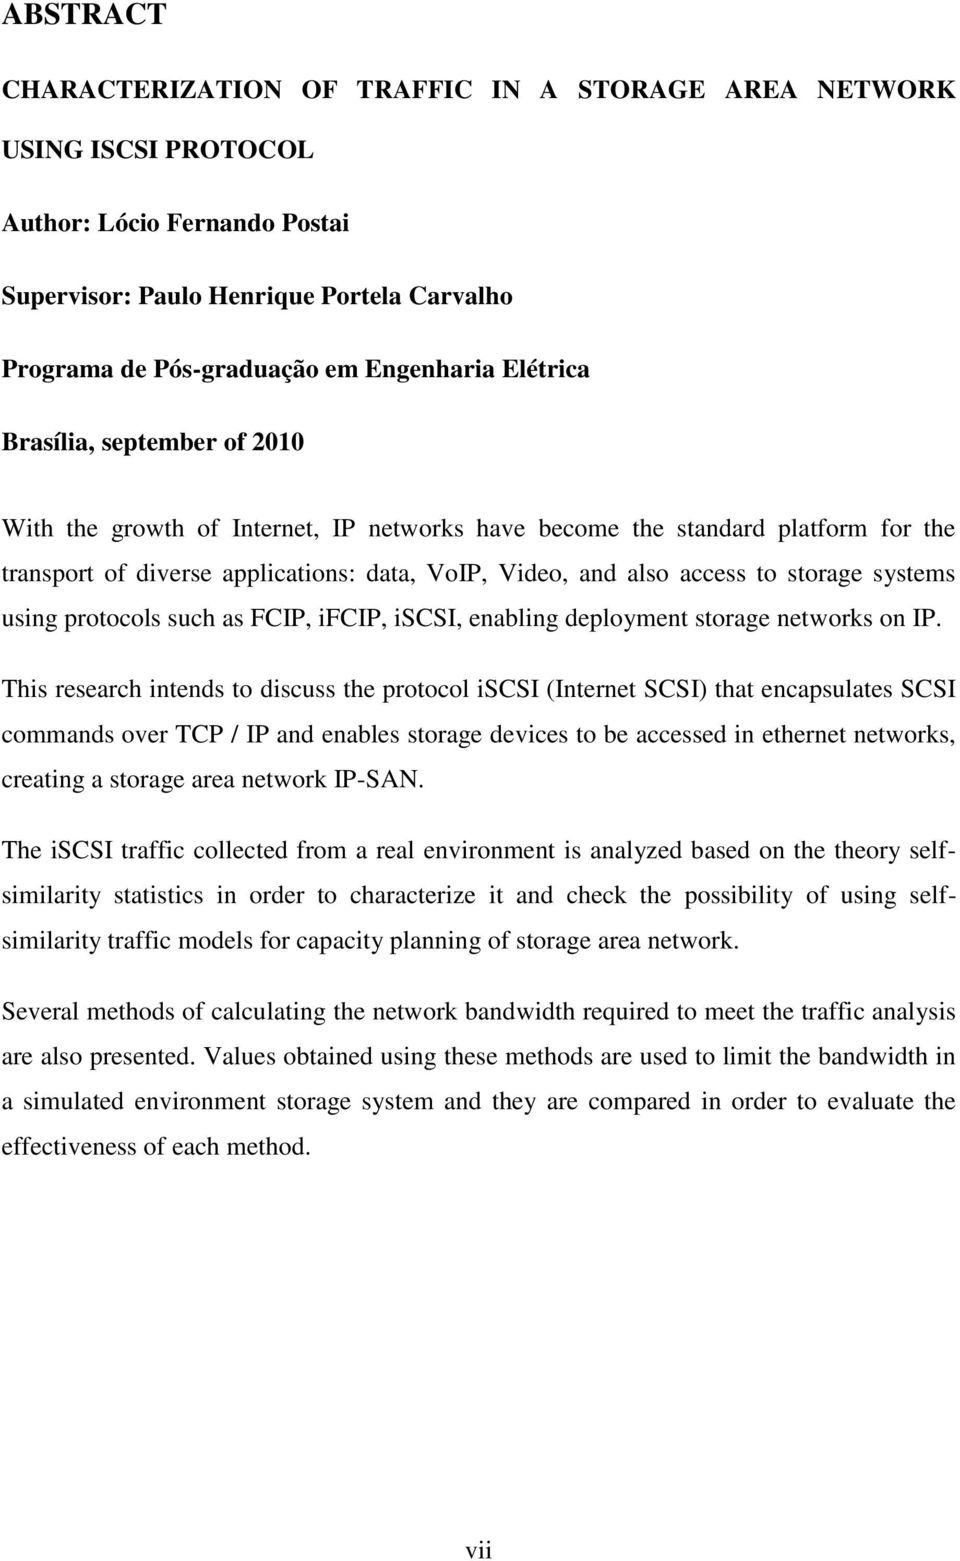 storage systems using protocols such as FCIP, ifcip, iscsi, enabling deployment storage networks on IP.